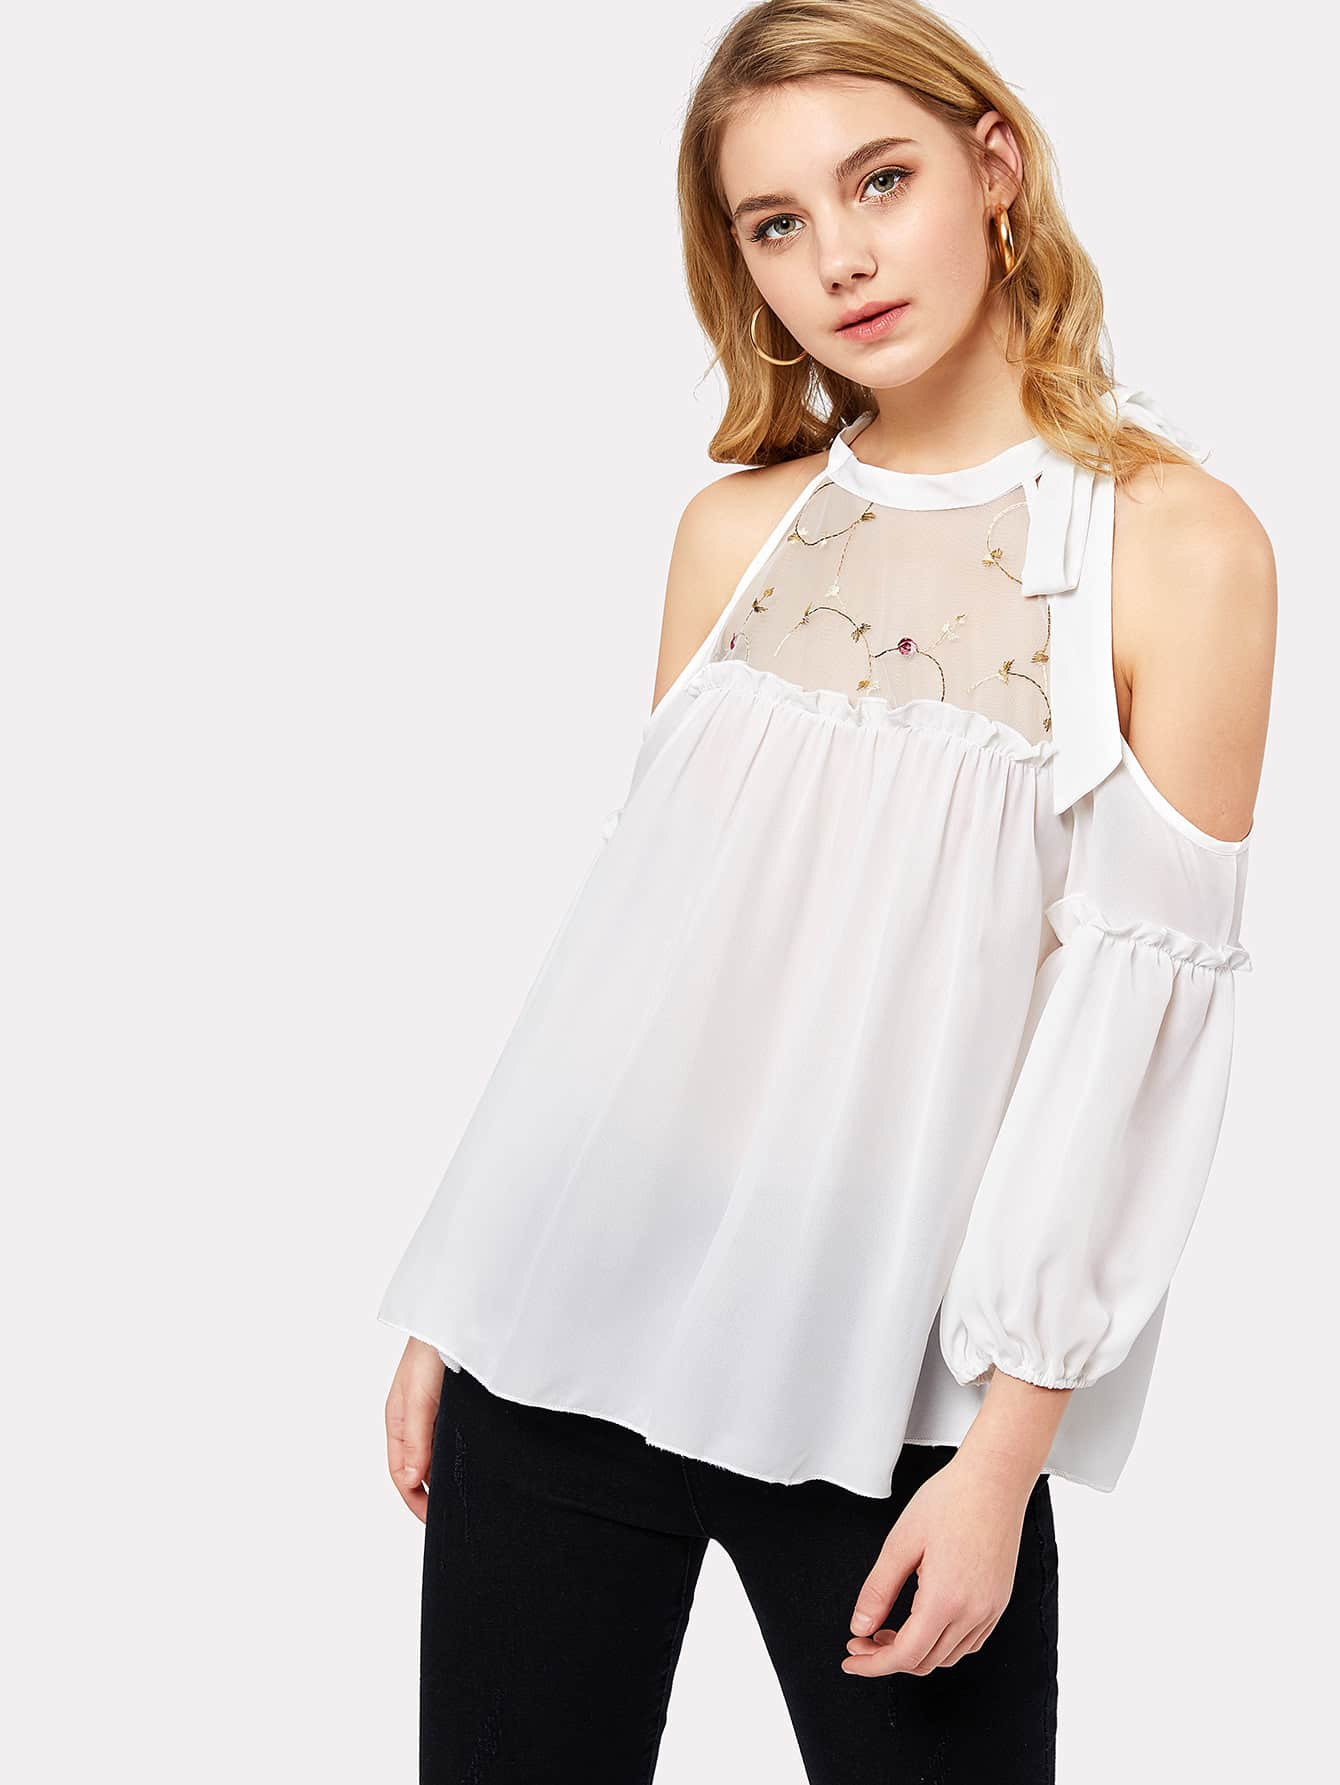 Embroidered Mesh Neck Open Shoulder Top mesh open shoulder side ruched lattice top